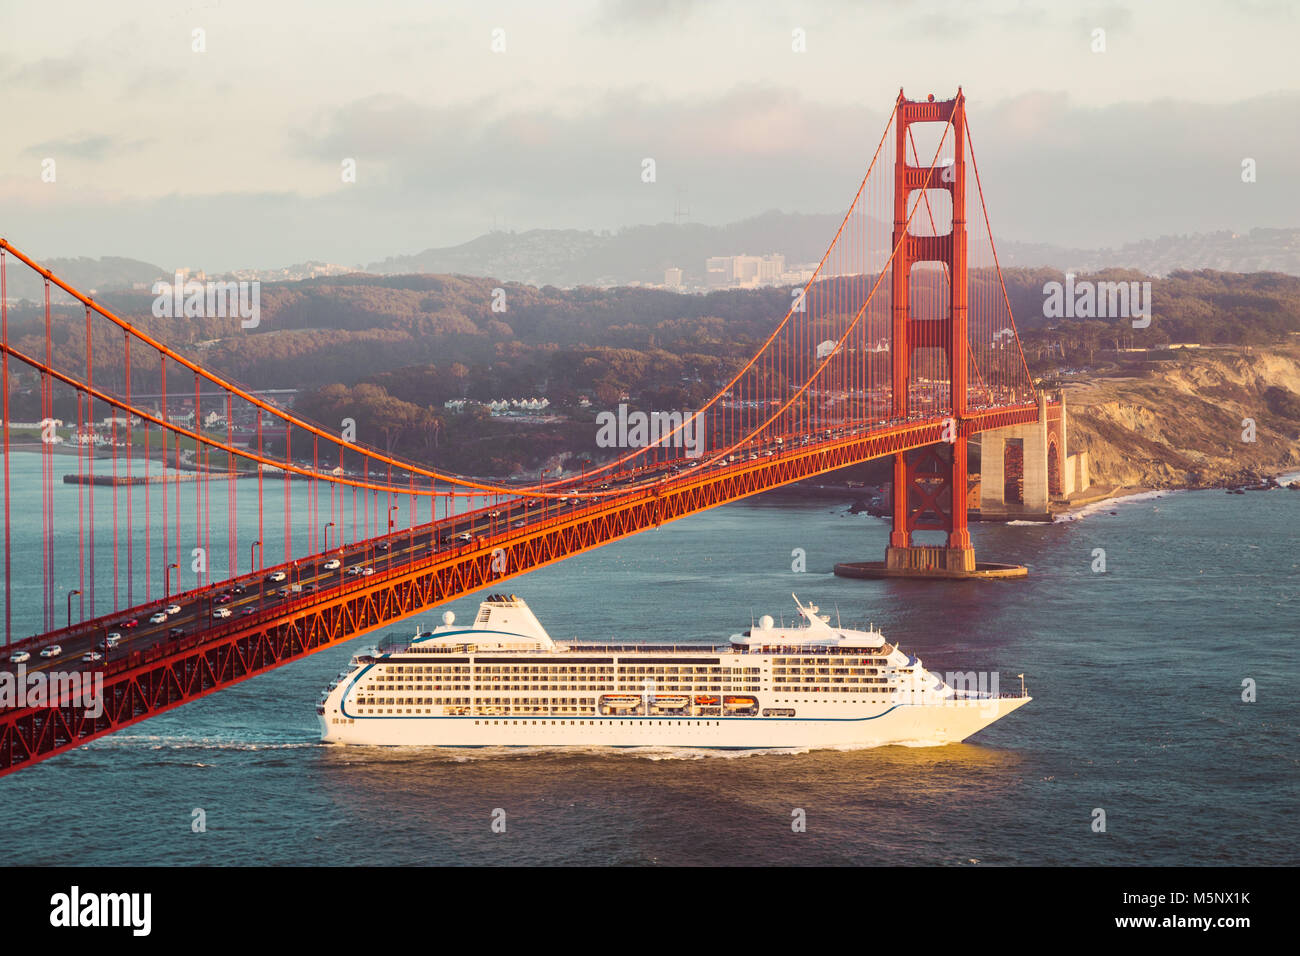 Cruise ship passing famous Golden Gate Bridge with the skyline of San Francisco in the background in golden evening - Stock Image